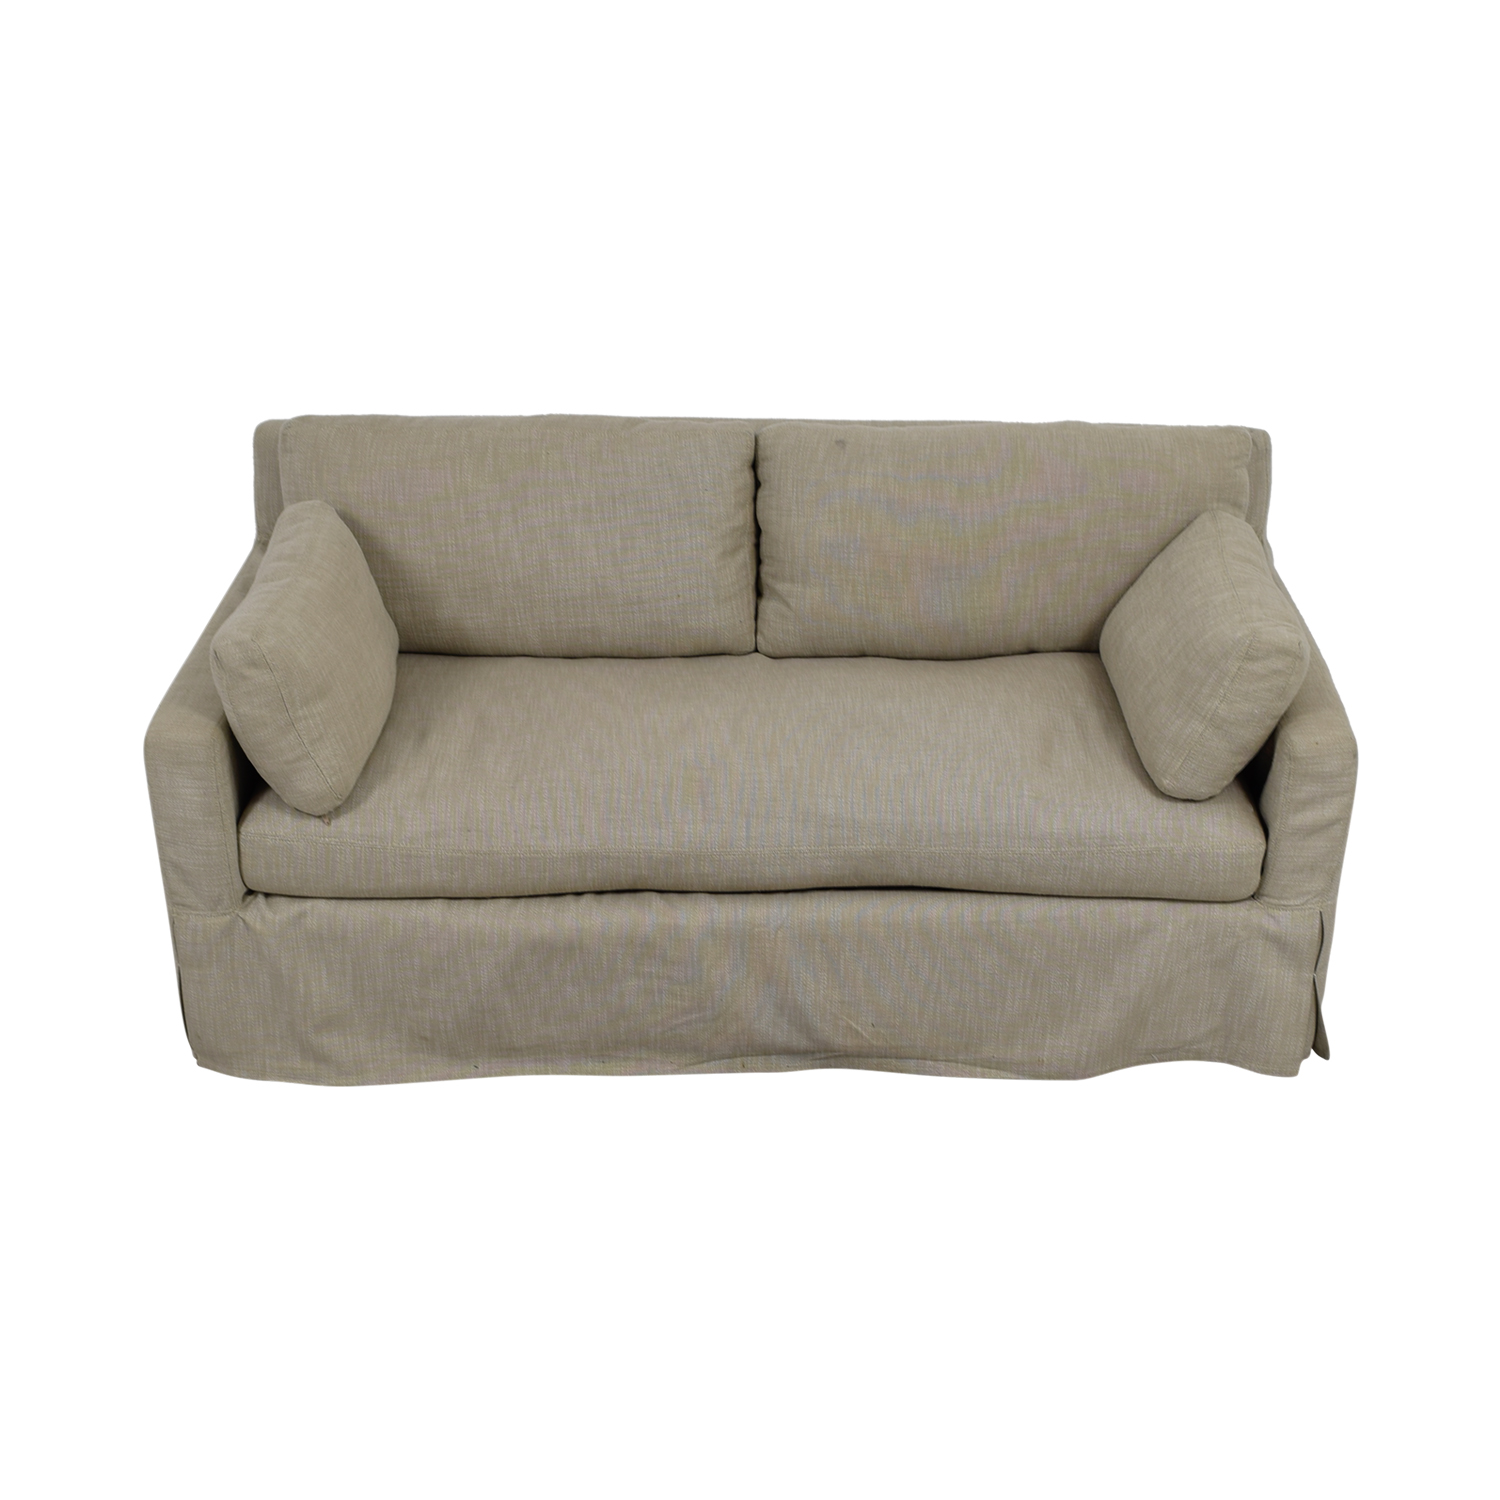 Restoration Hardware Belgian Beige Track Arm Slipcovered Sofa Restoration Hardware